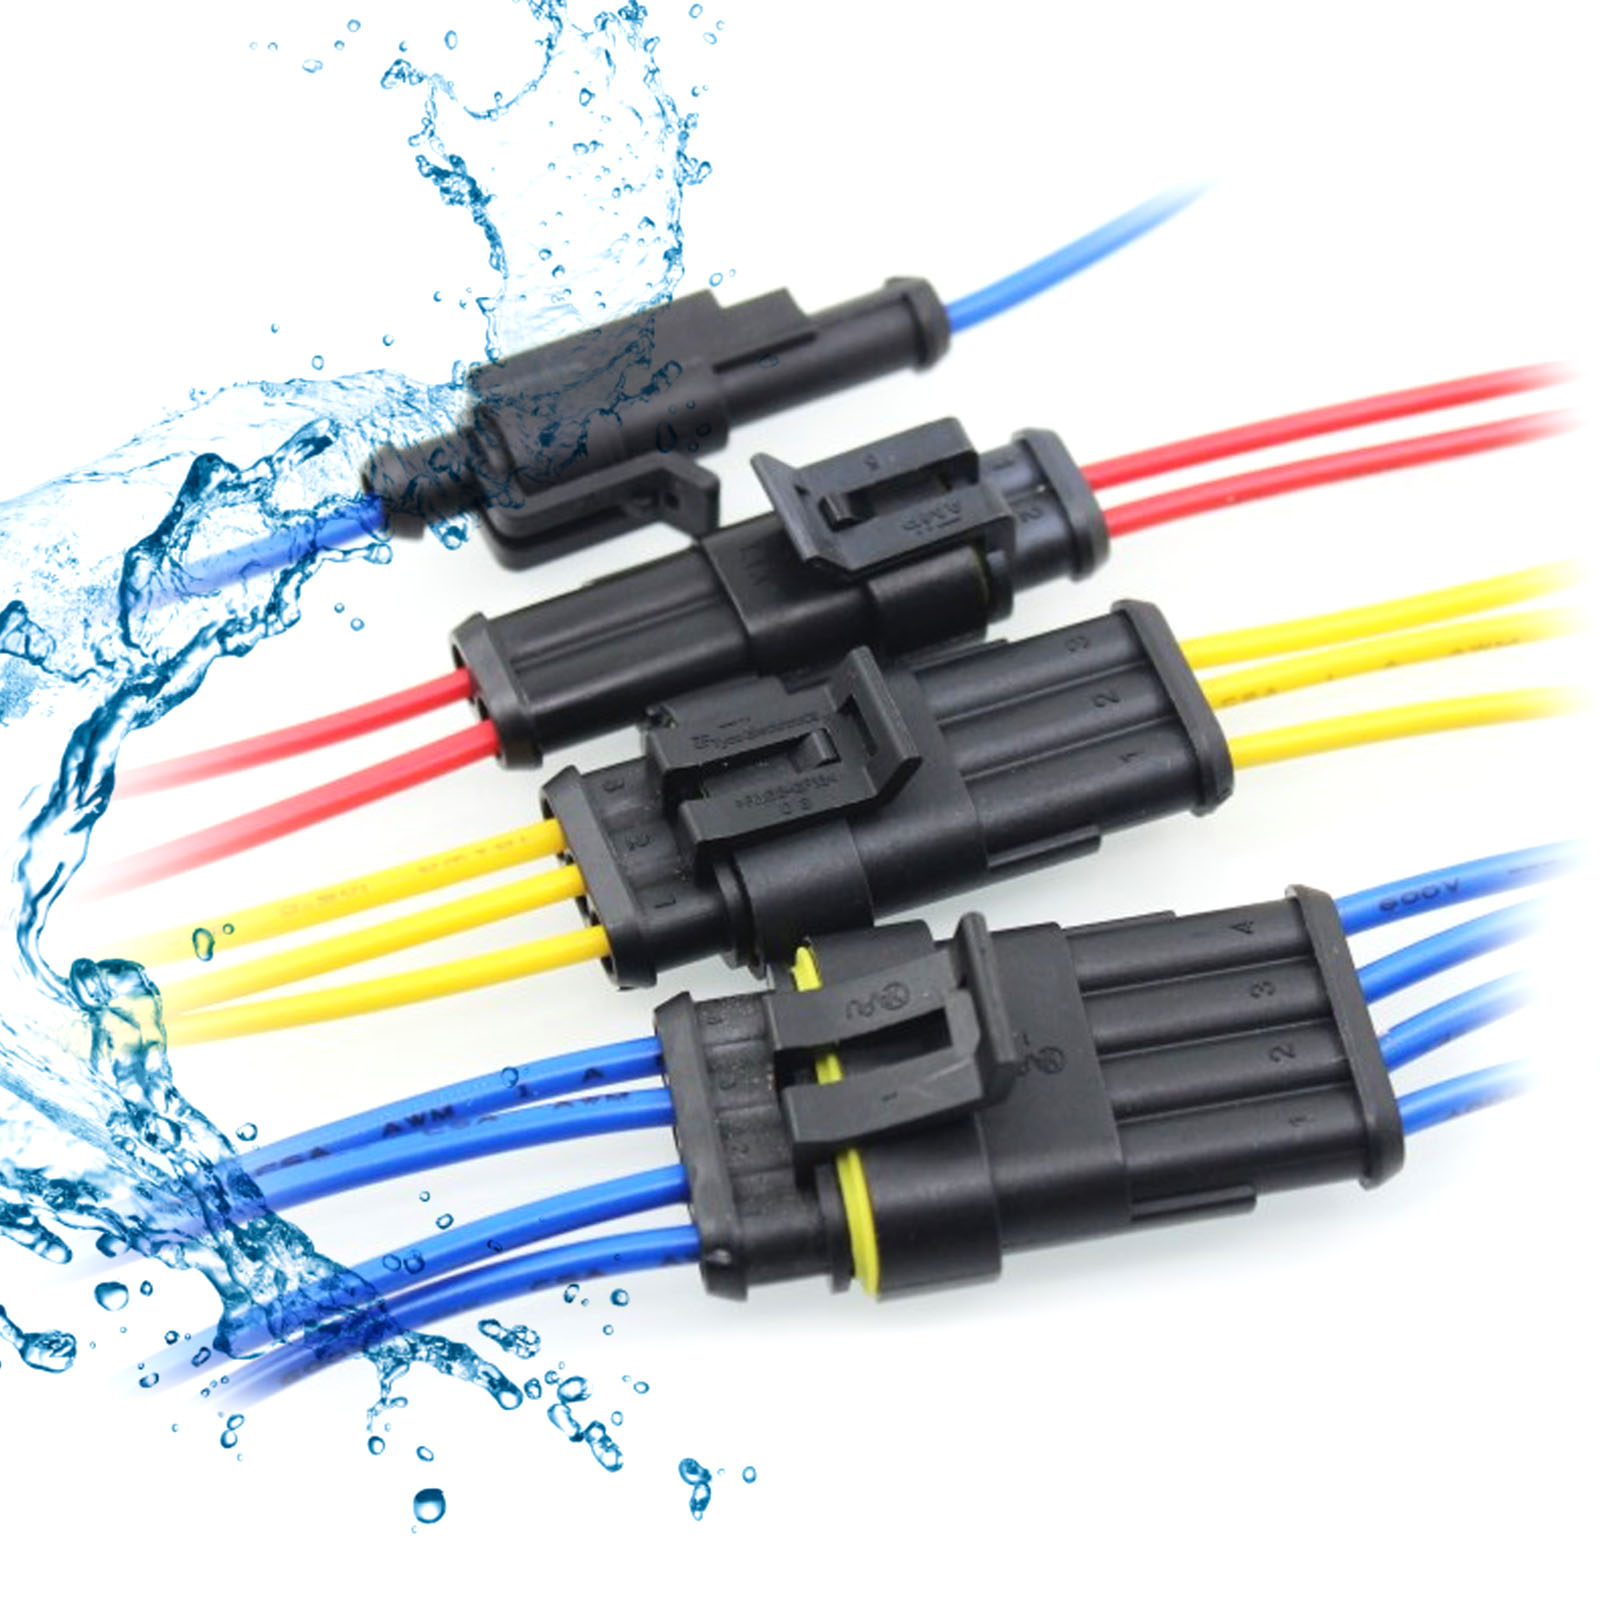 2 3 4 way superseal waterproof electricial connector plug kit 12v